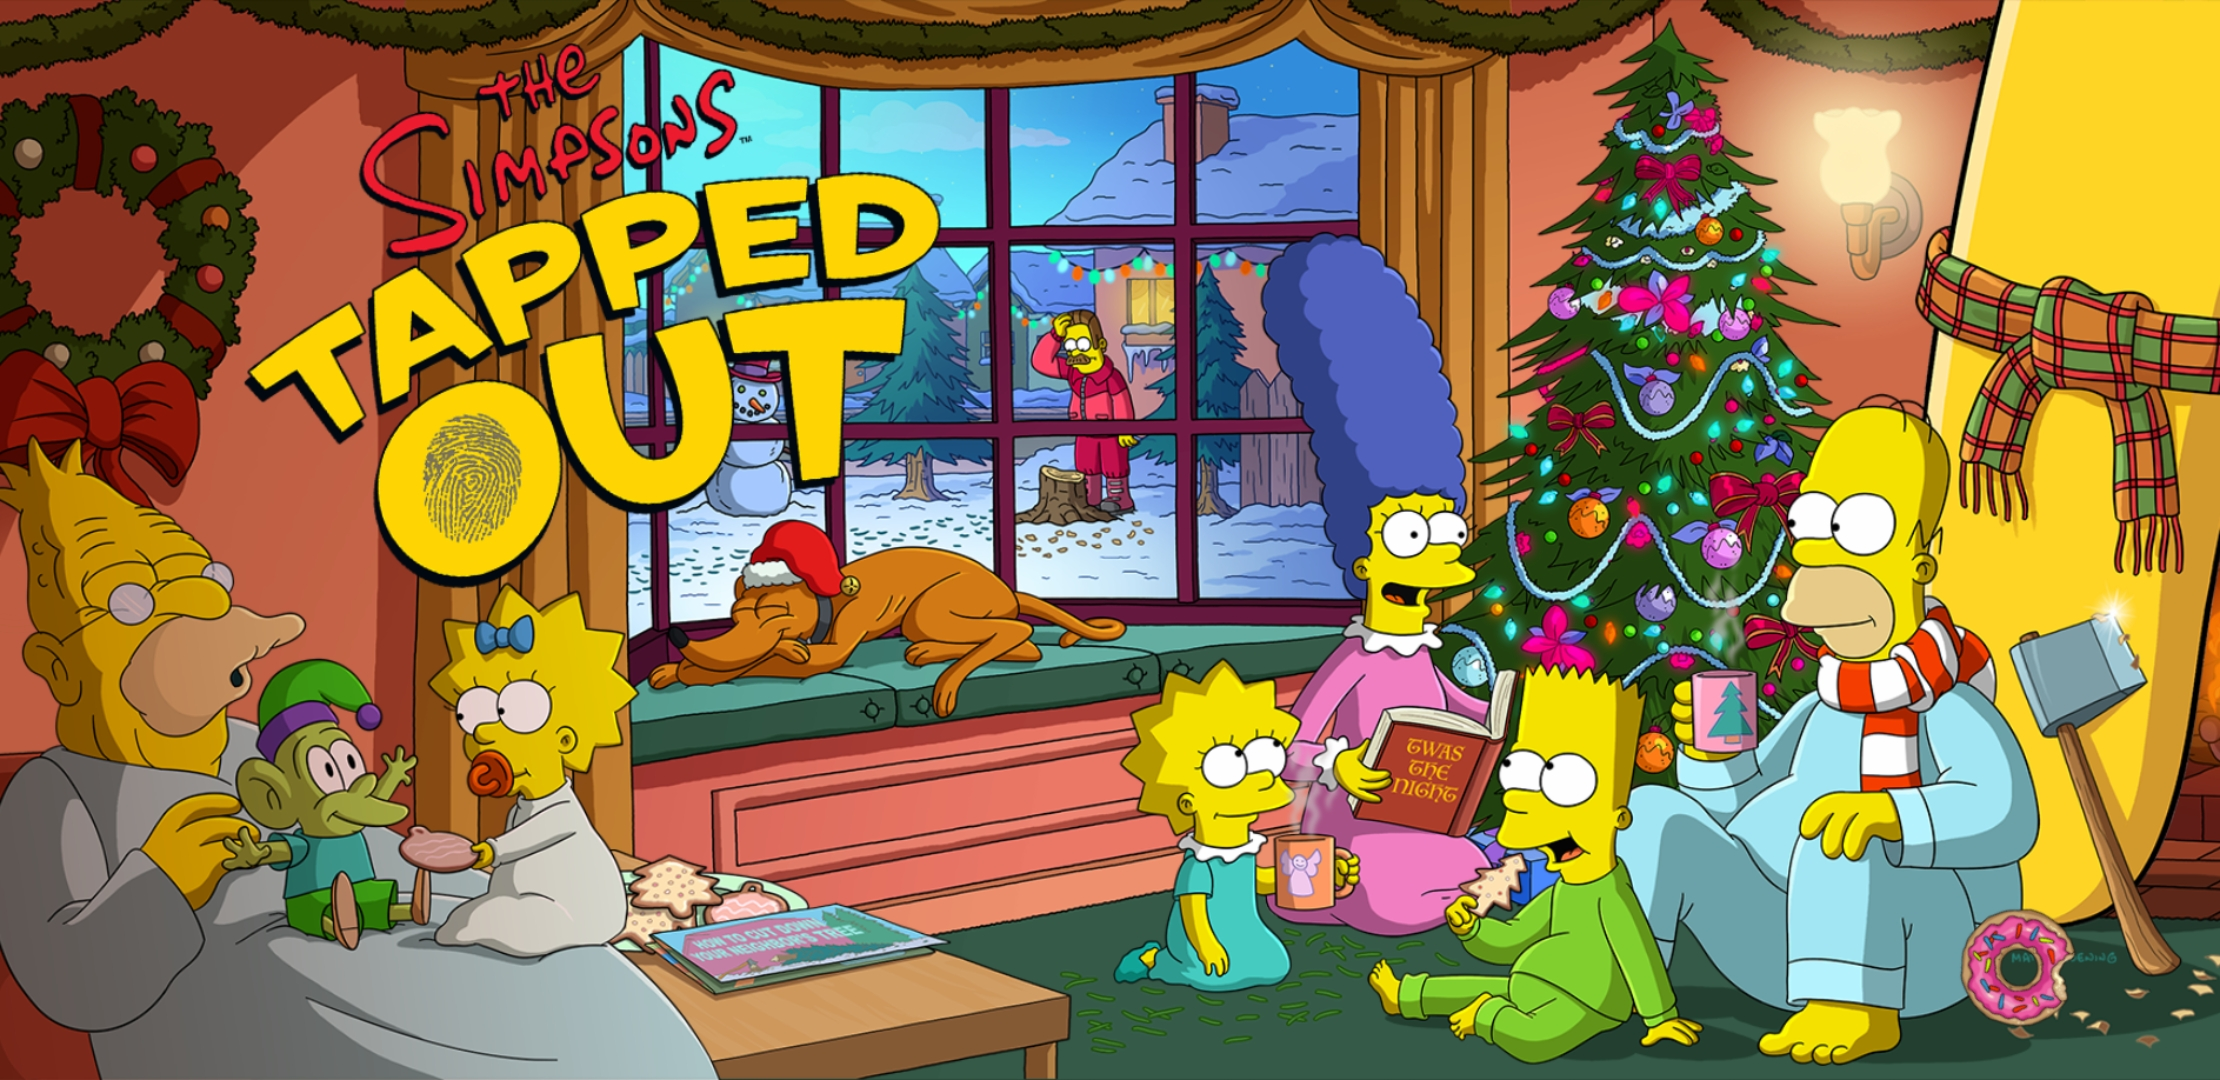 The Simpsons Tapped Out Christmas 2019 2018 Christmas EventThe Simpsons Tapped Out AddictsAll Things The